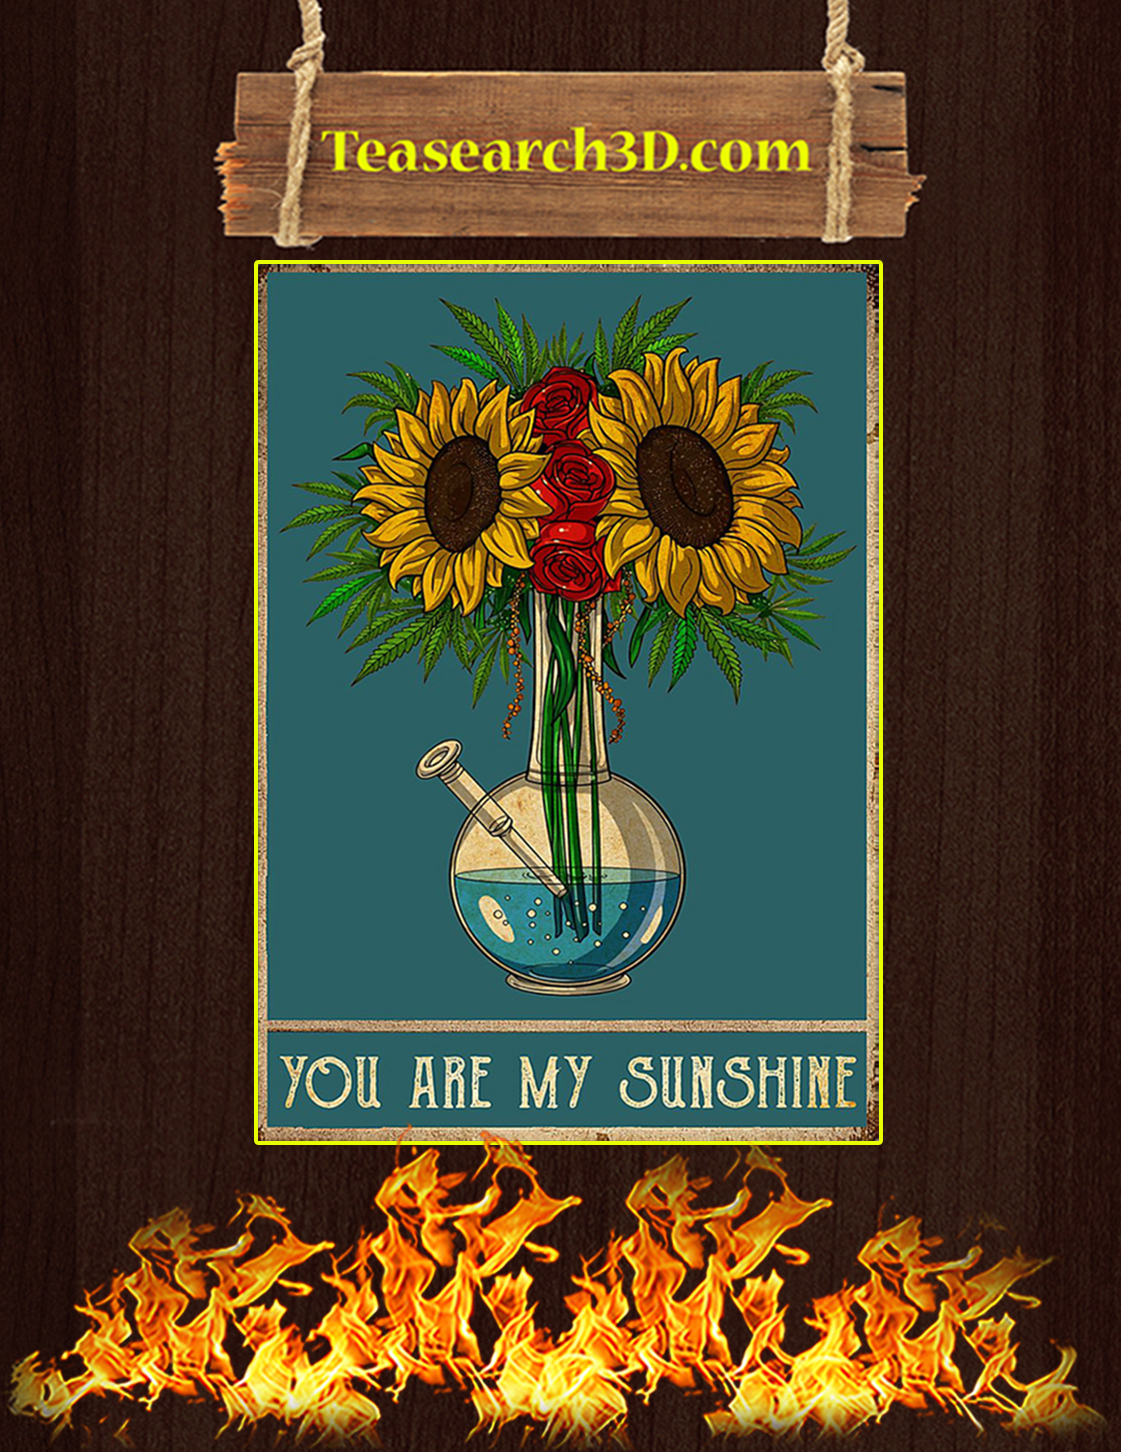 Sunflower rose weed you are my sunshine poster A3